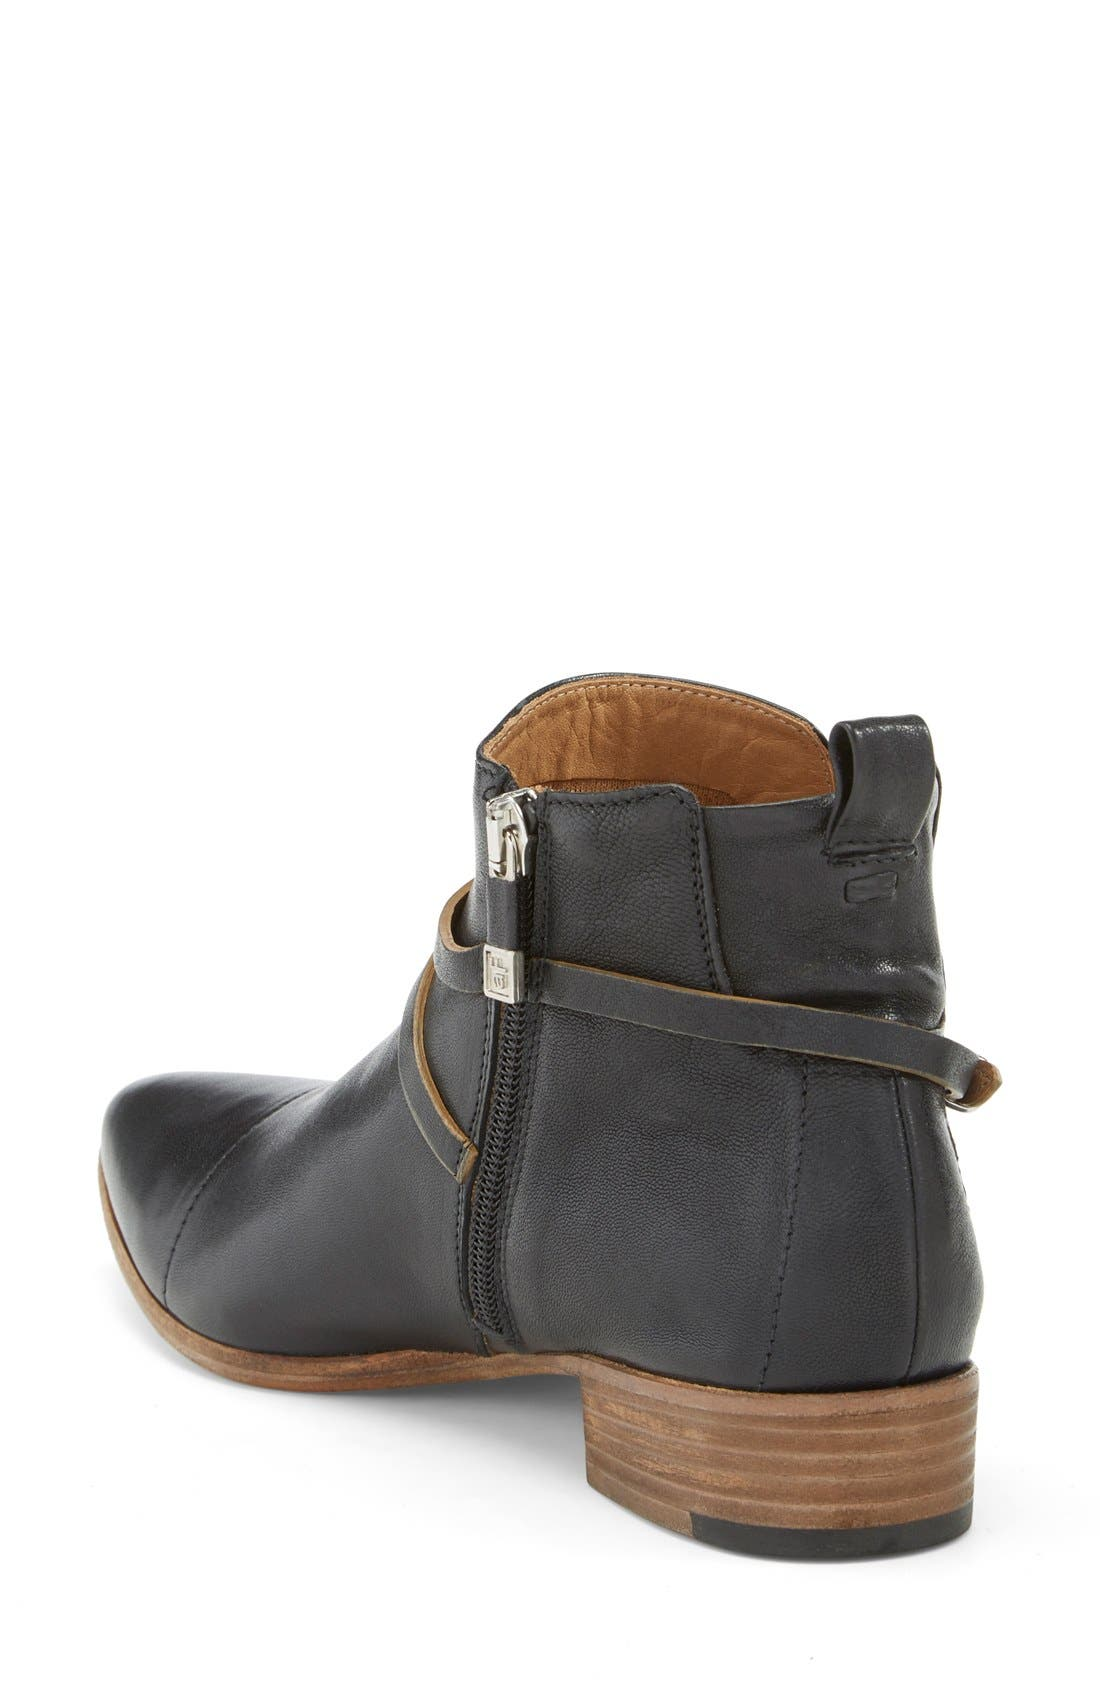 'Mea' Ankle Boot,                             Alternate thumbnail 10, color,